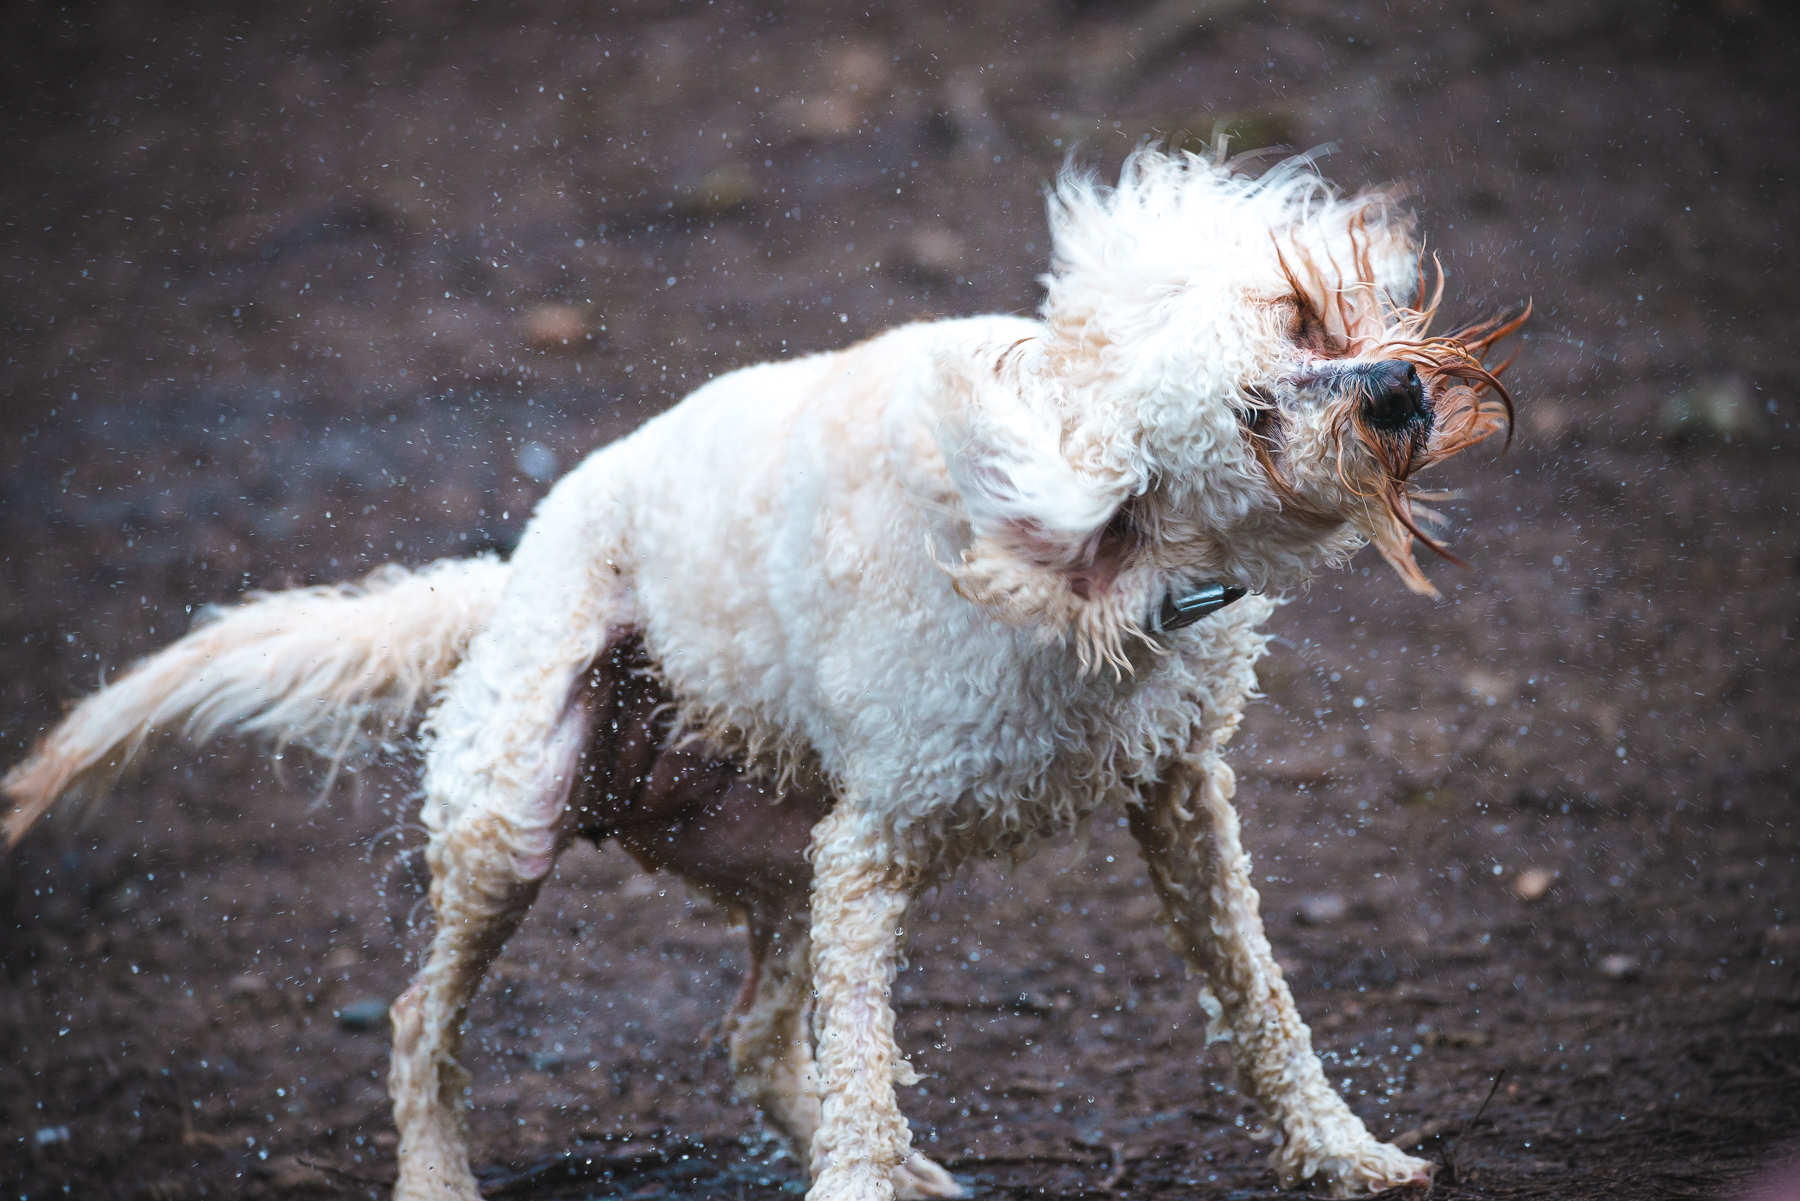 A wet Cockapoo dog shaking off water